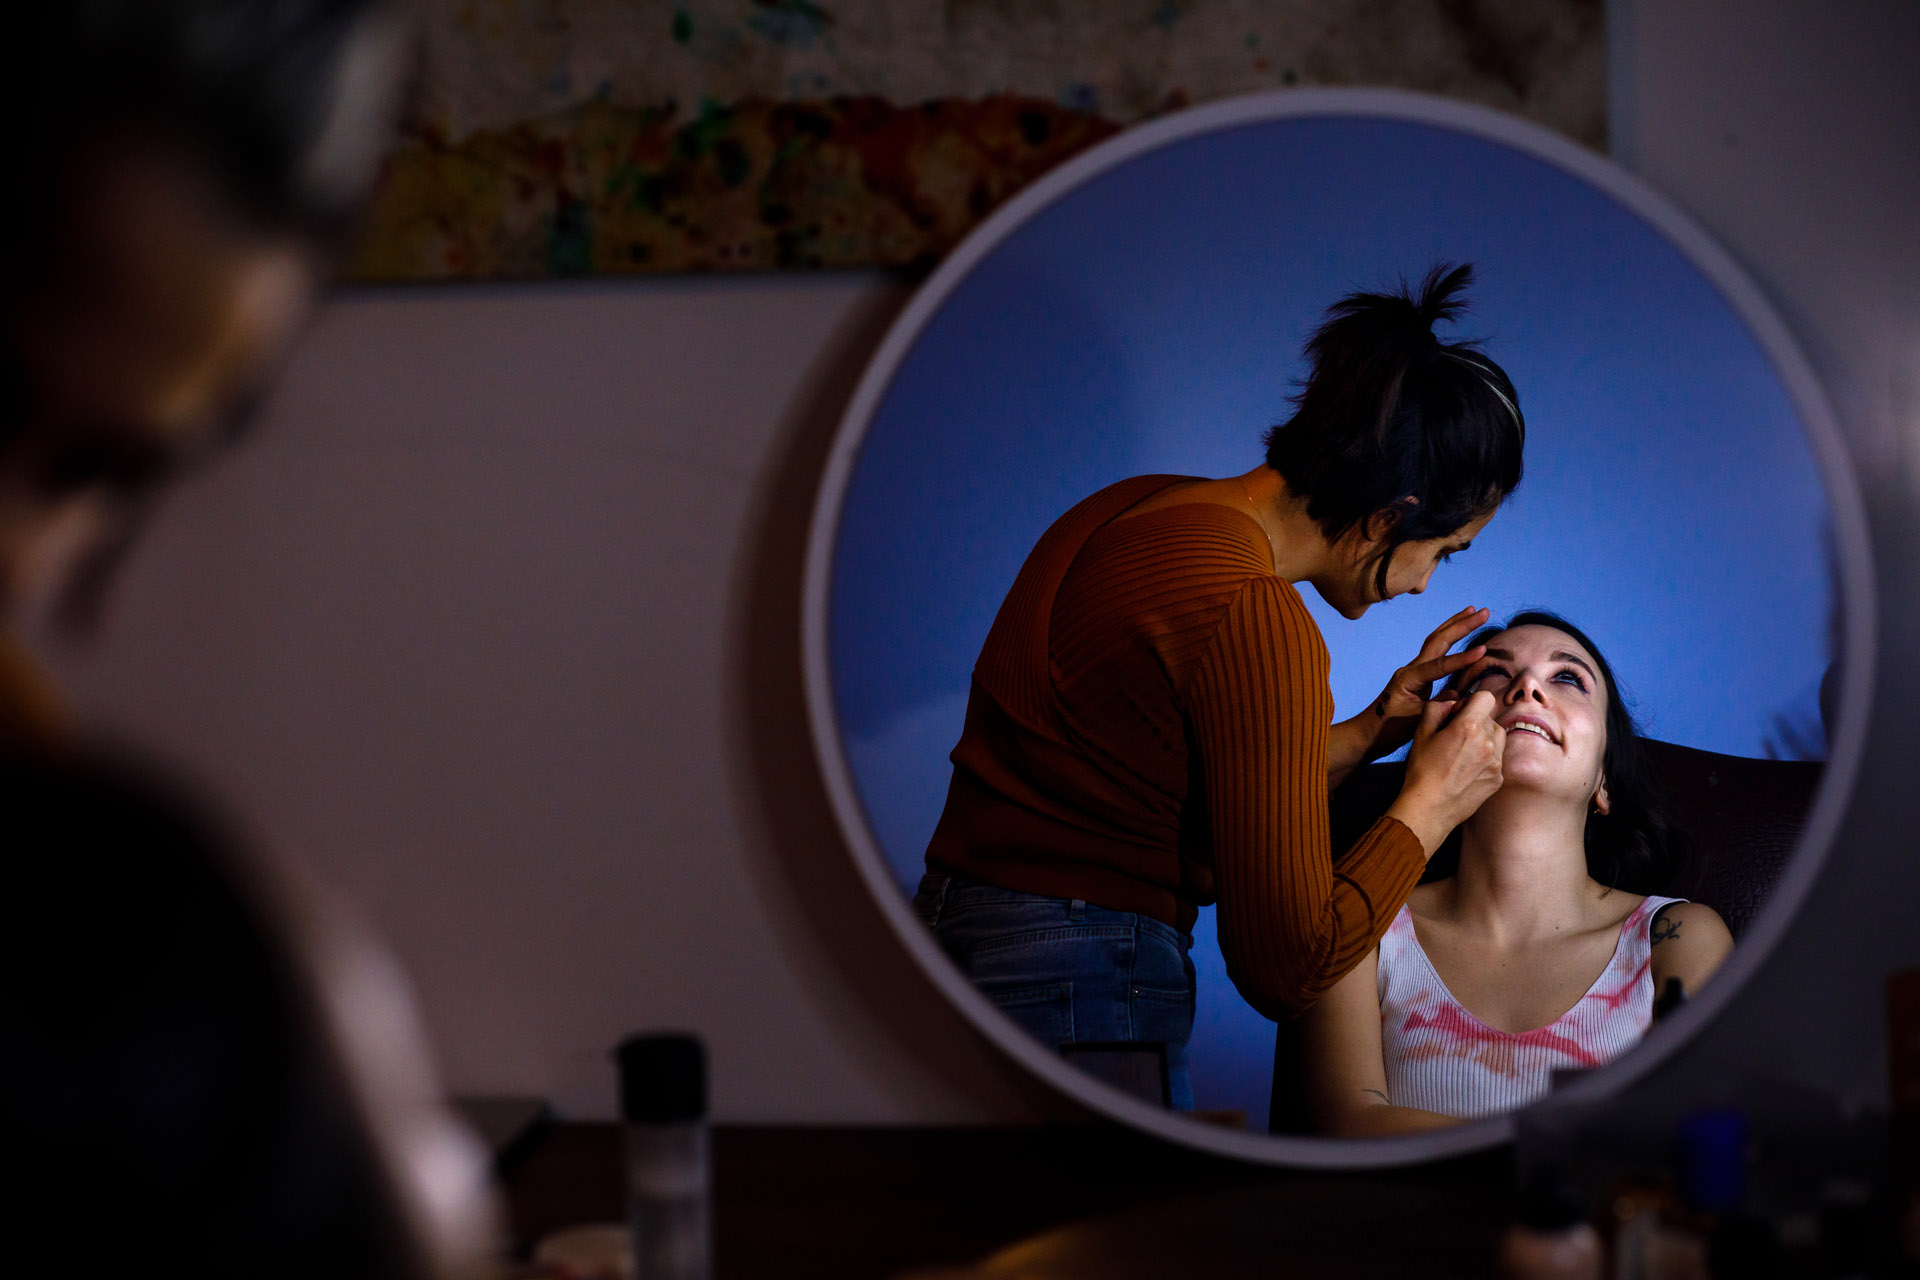 Istanbul, Turkey COVID Wedding Photography | The bride wanted prepare for the wedding at her own home